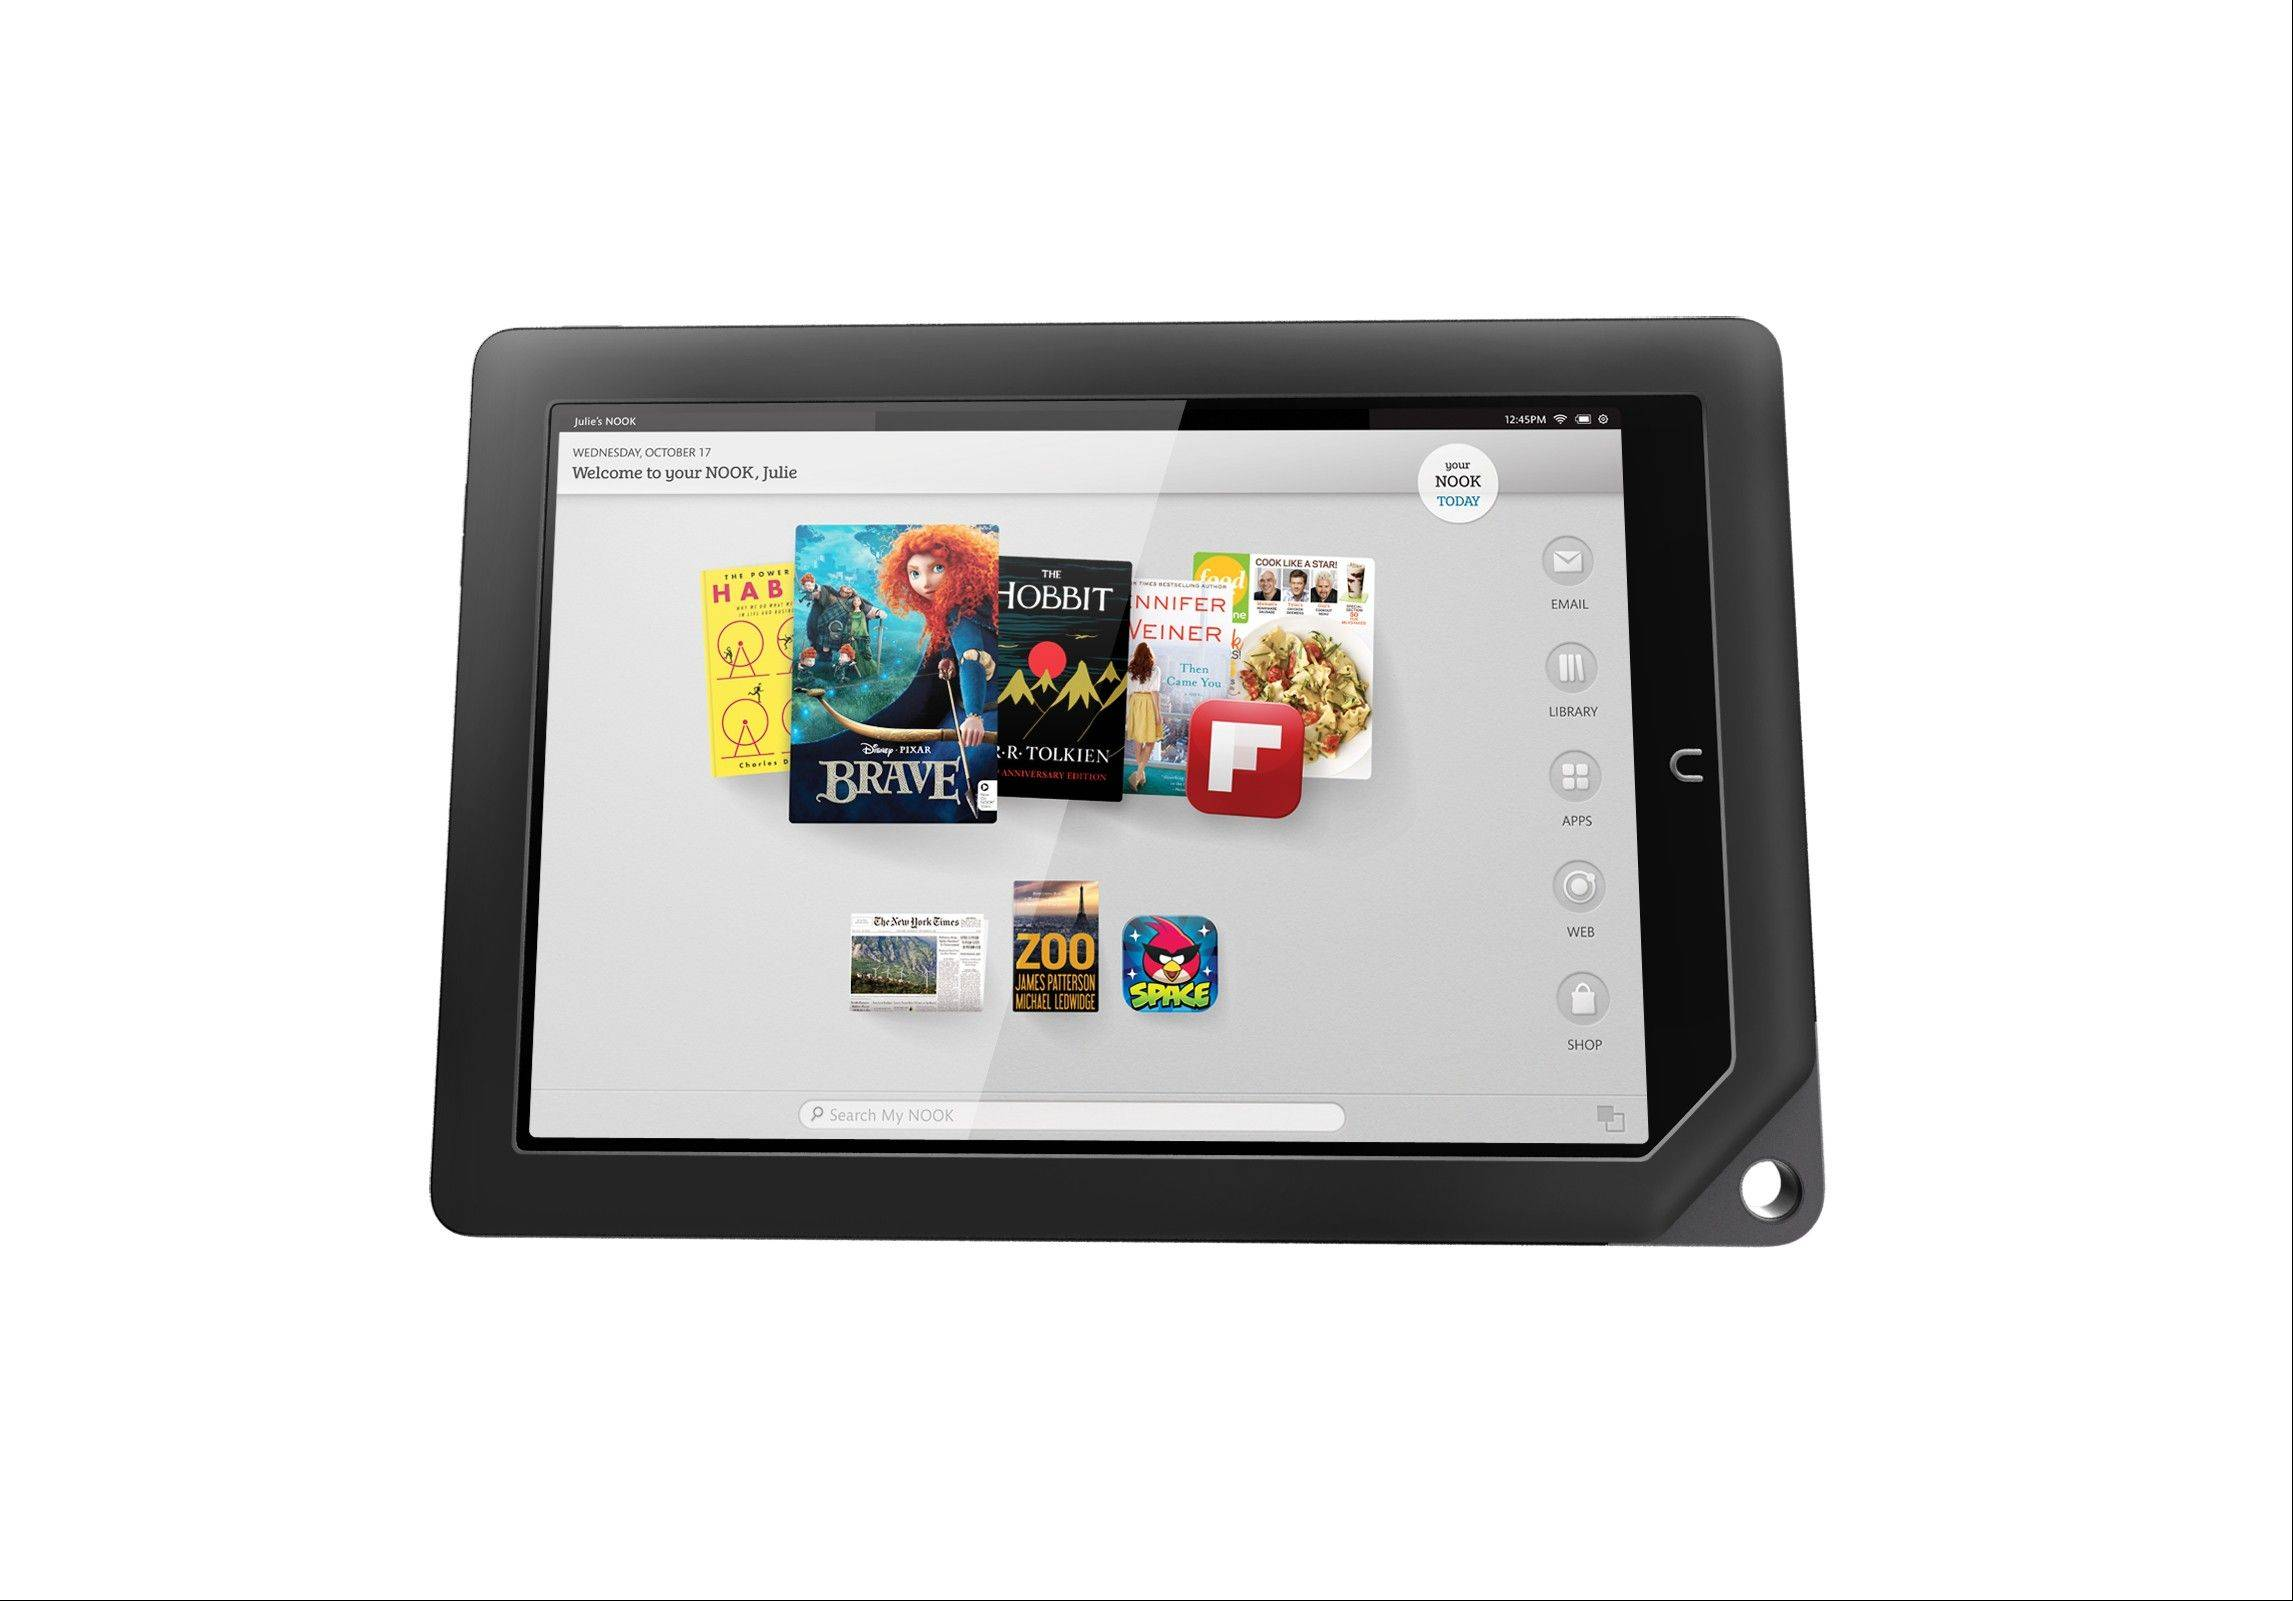 One of the two new Nook tablets the company will be releasing in the fall of 2012.